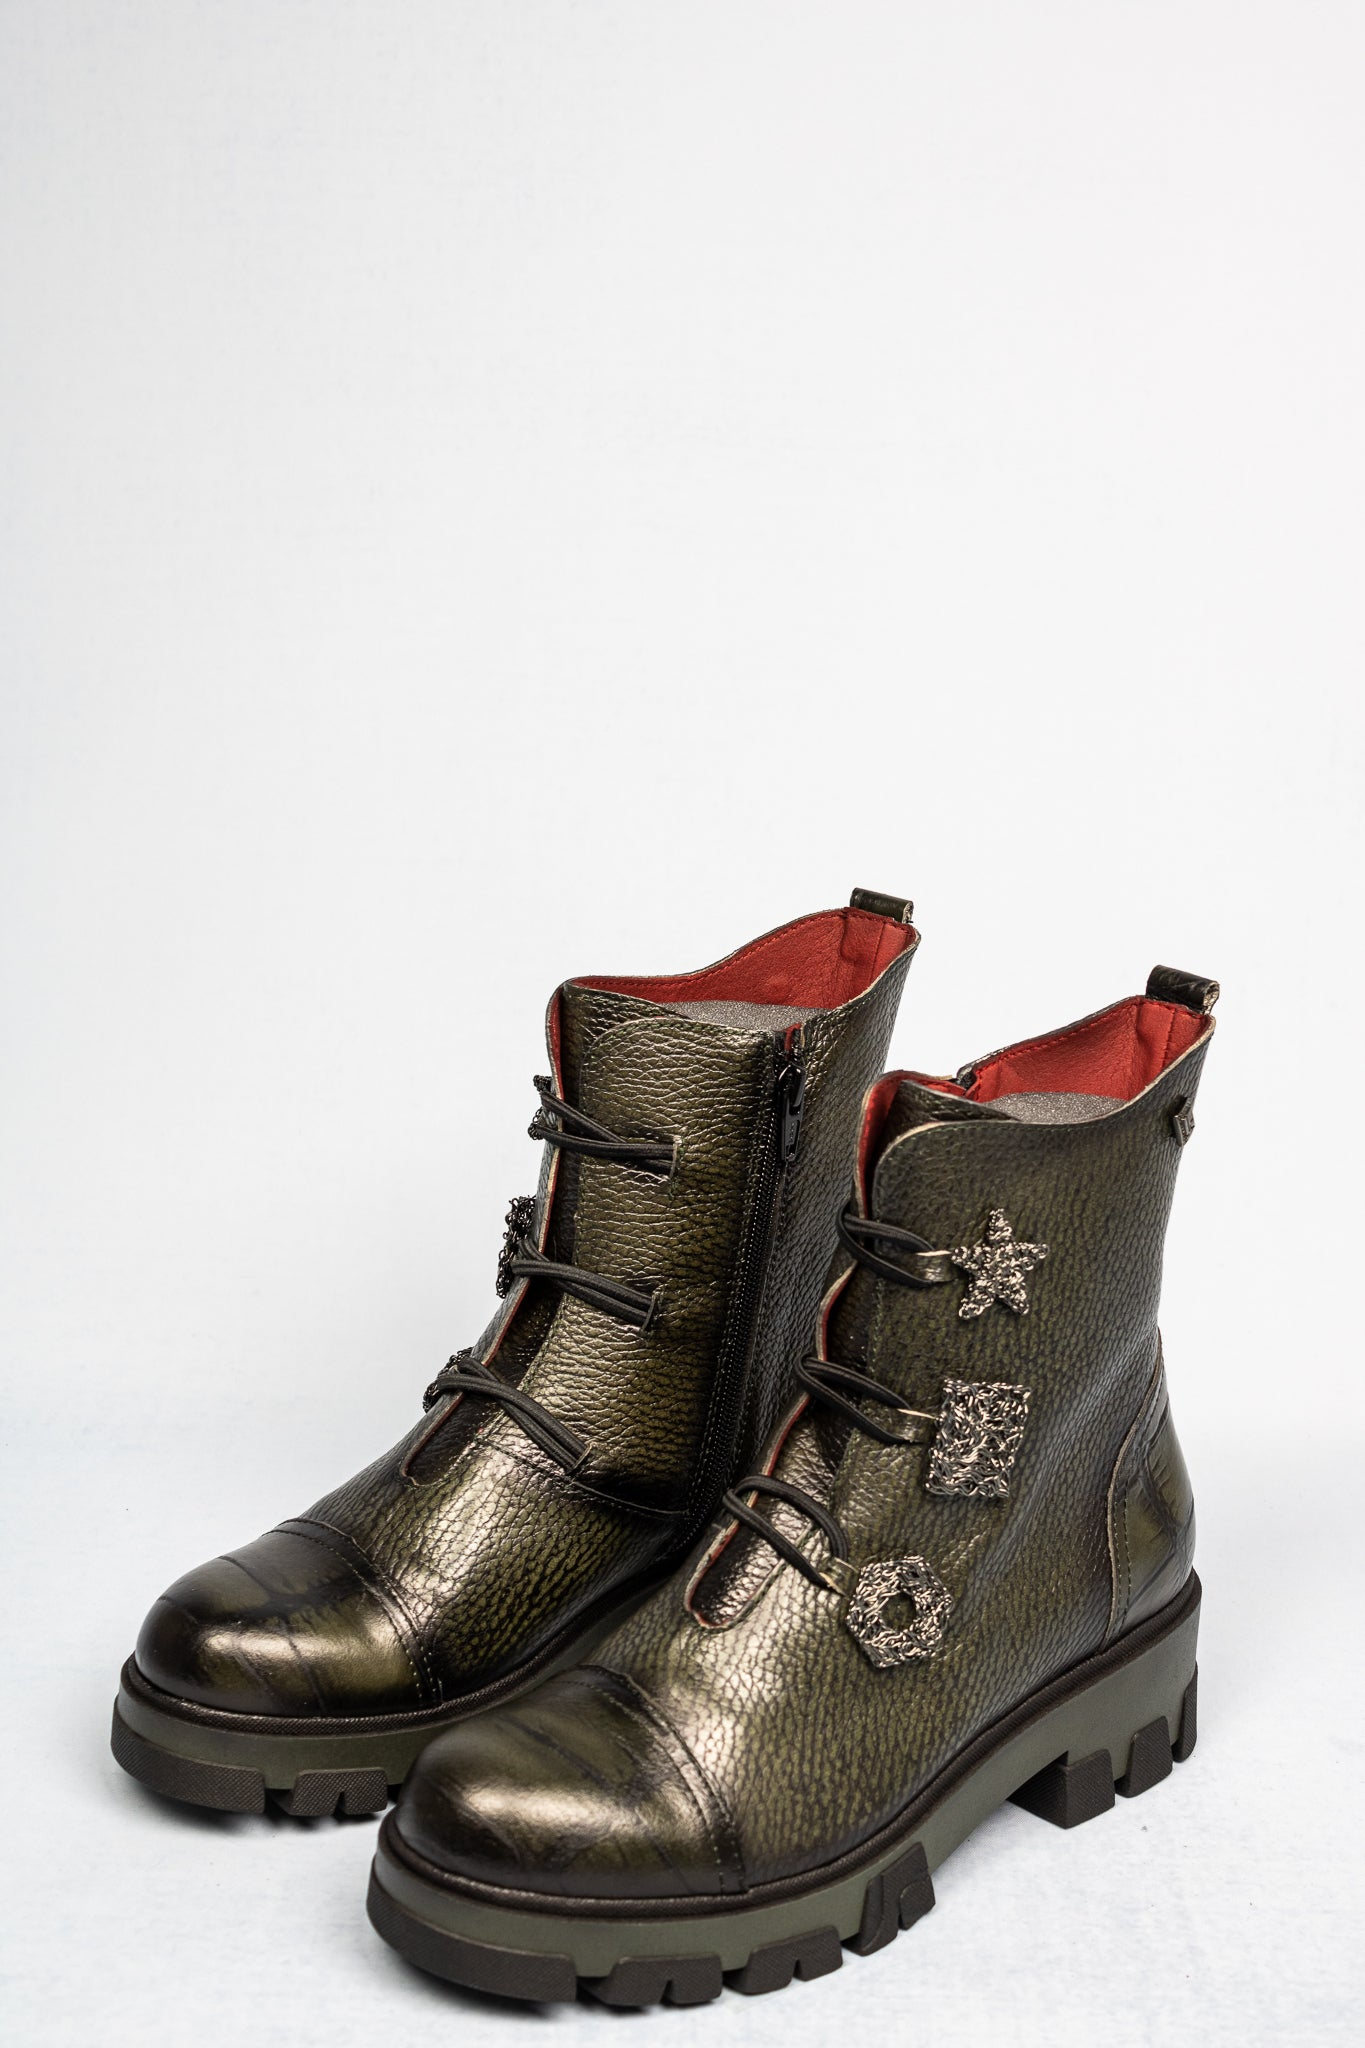 3001-K-C Jose Saenz Moss Green Ladies Ankle Boots for sale online ireland